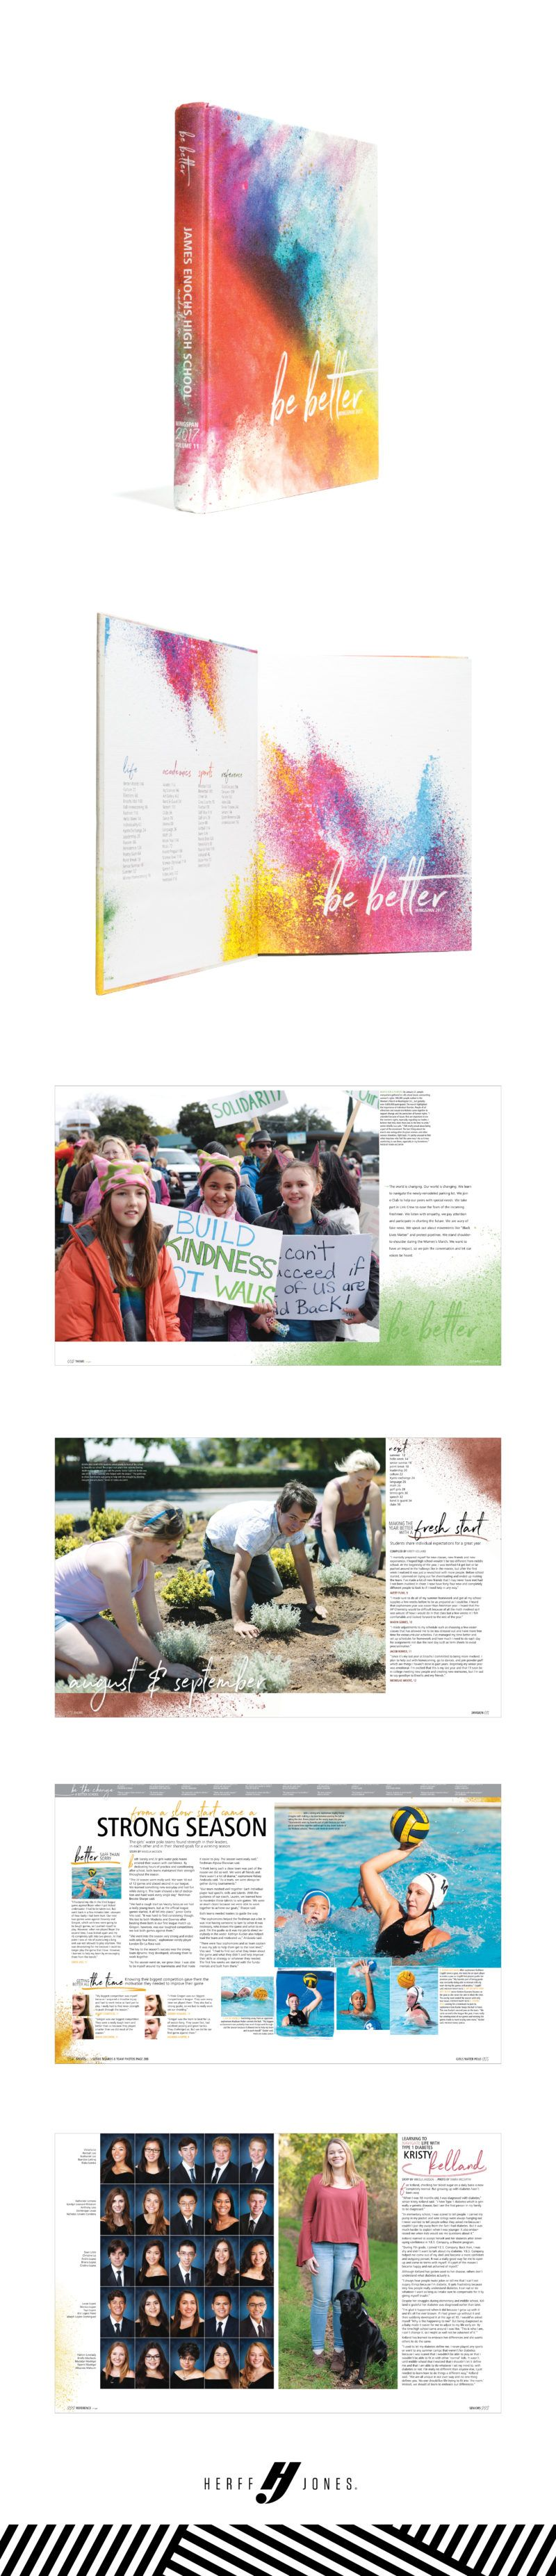 Wingspan James Enochs High School Modesto Ca Yearbook Themes Yearbook Pages Yearbook Covers